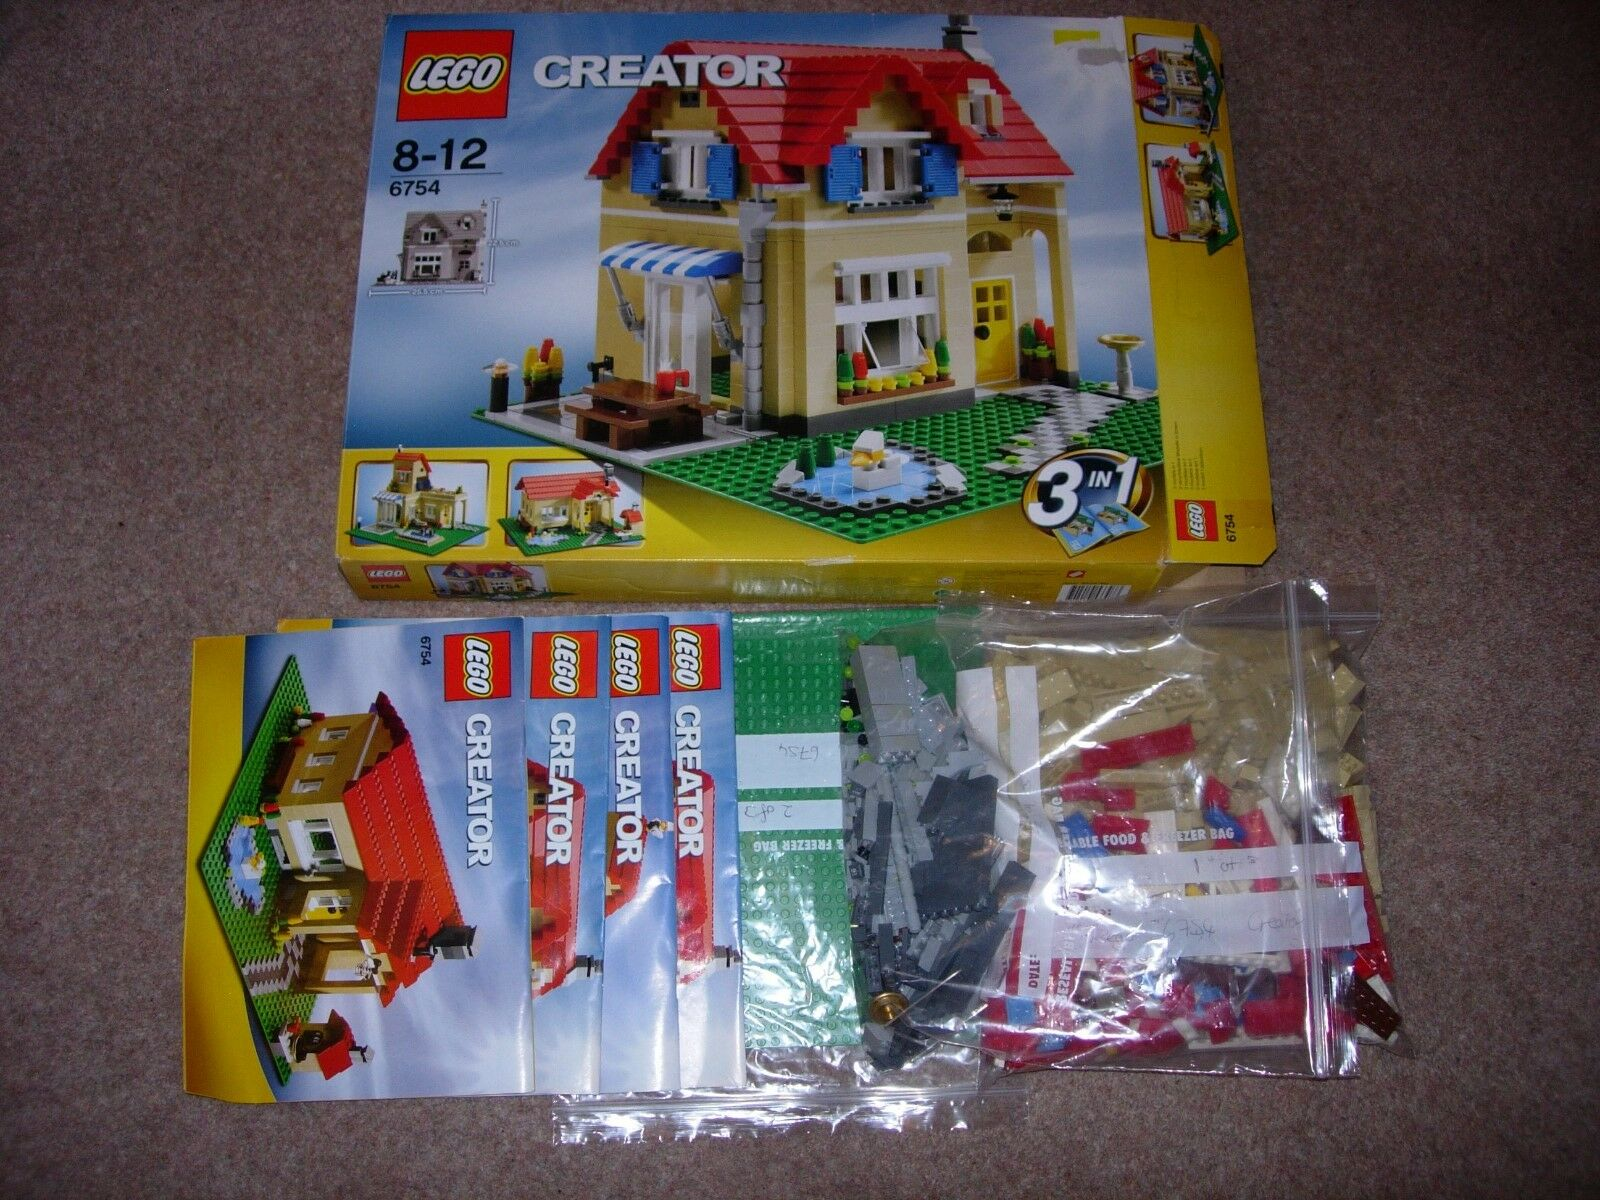 Lego Creator 6754 Family Home (3 in 1; 100% complete; boxed; instructions)